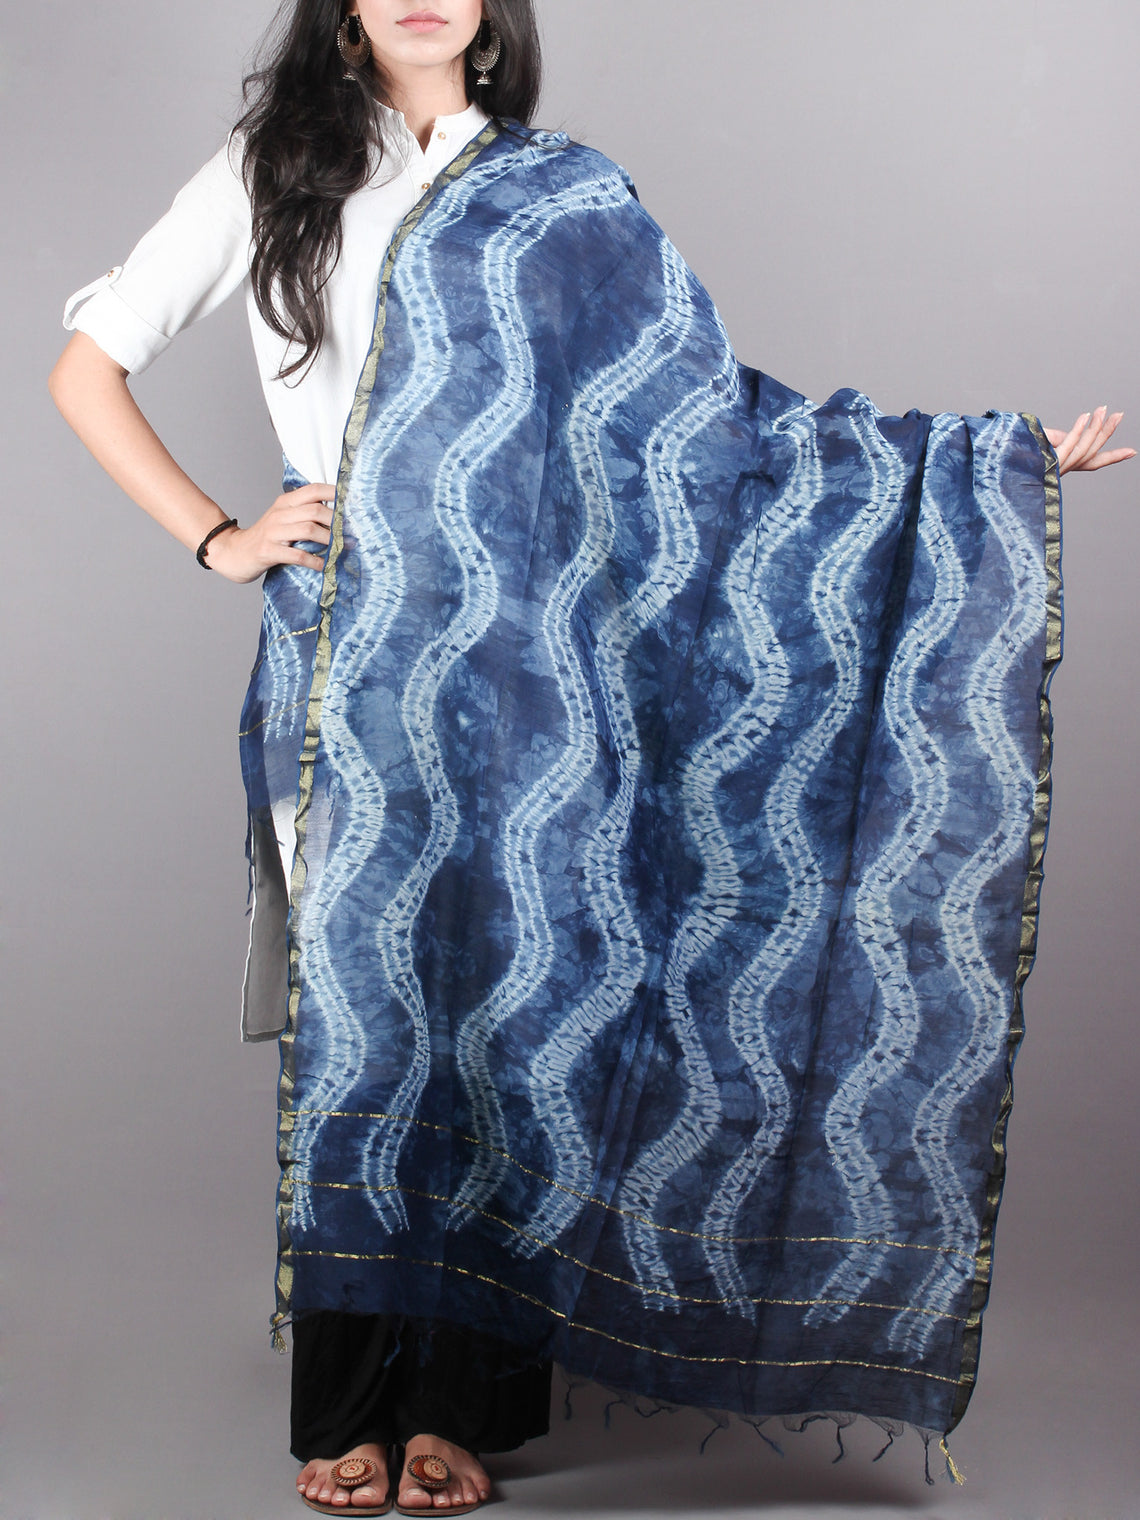 Indigo Shibori Hand Dyed in Natural Vegetable Colors Chanderi Dupatta - D0417059